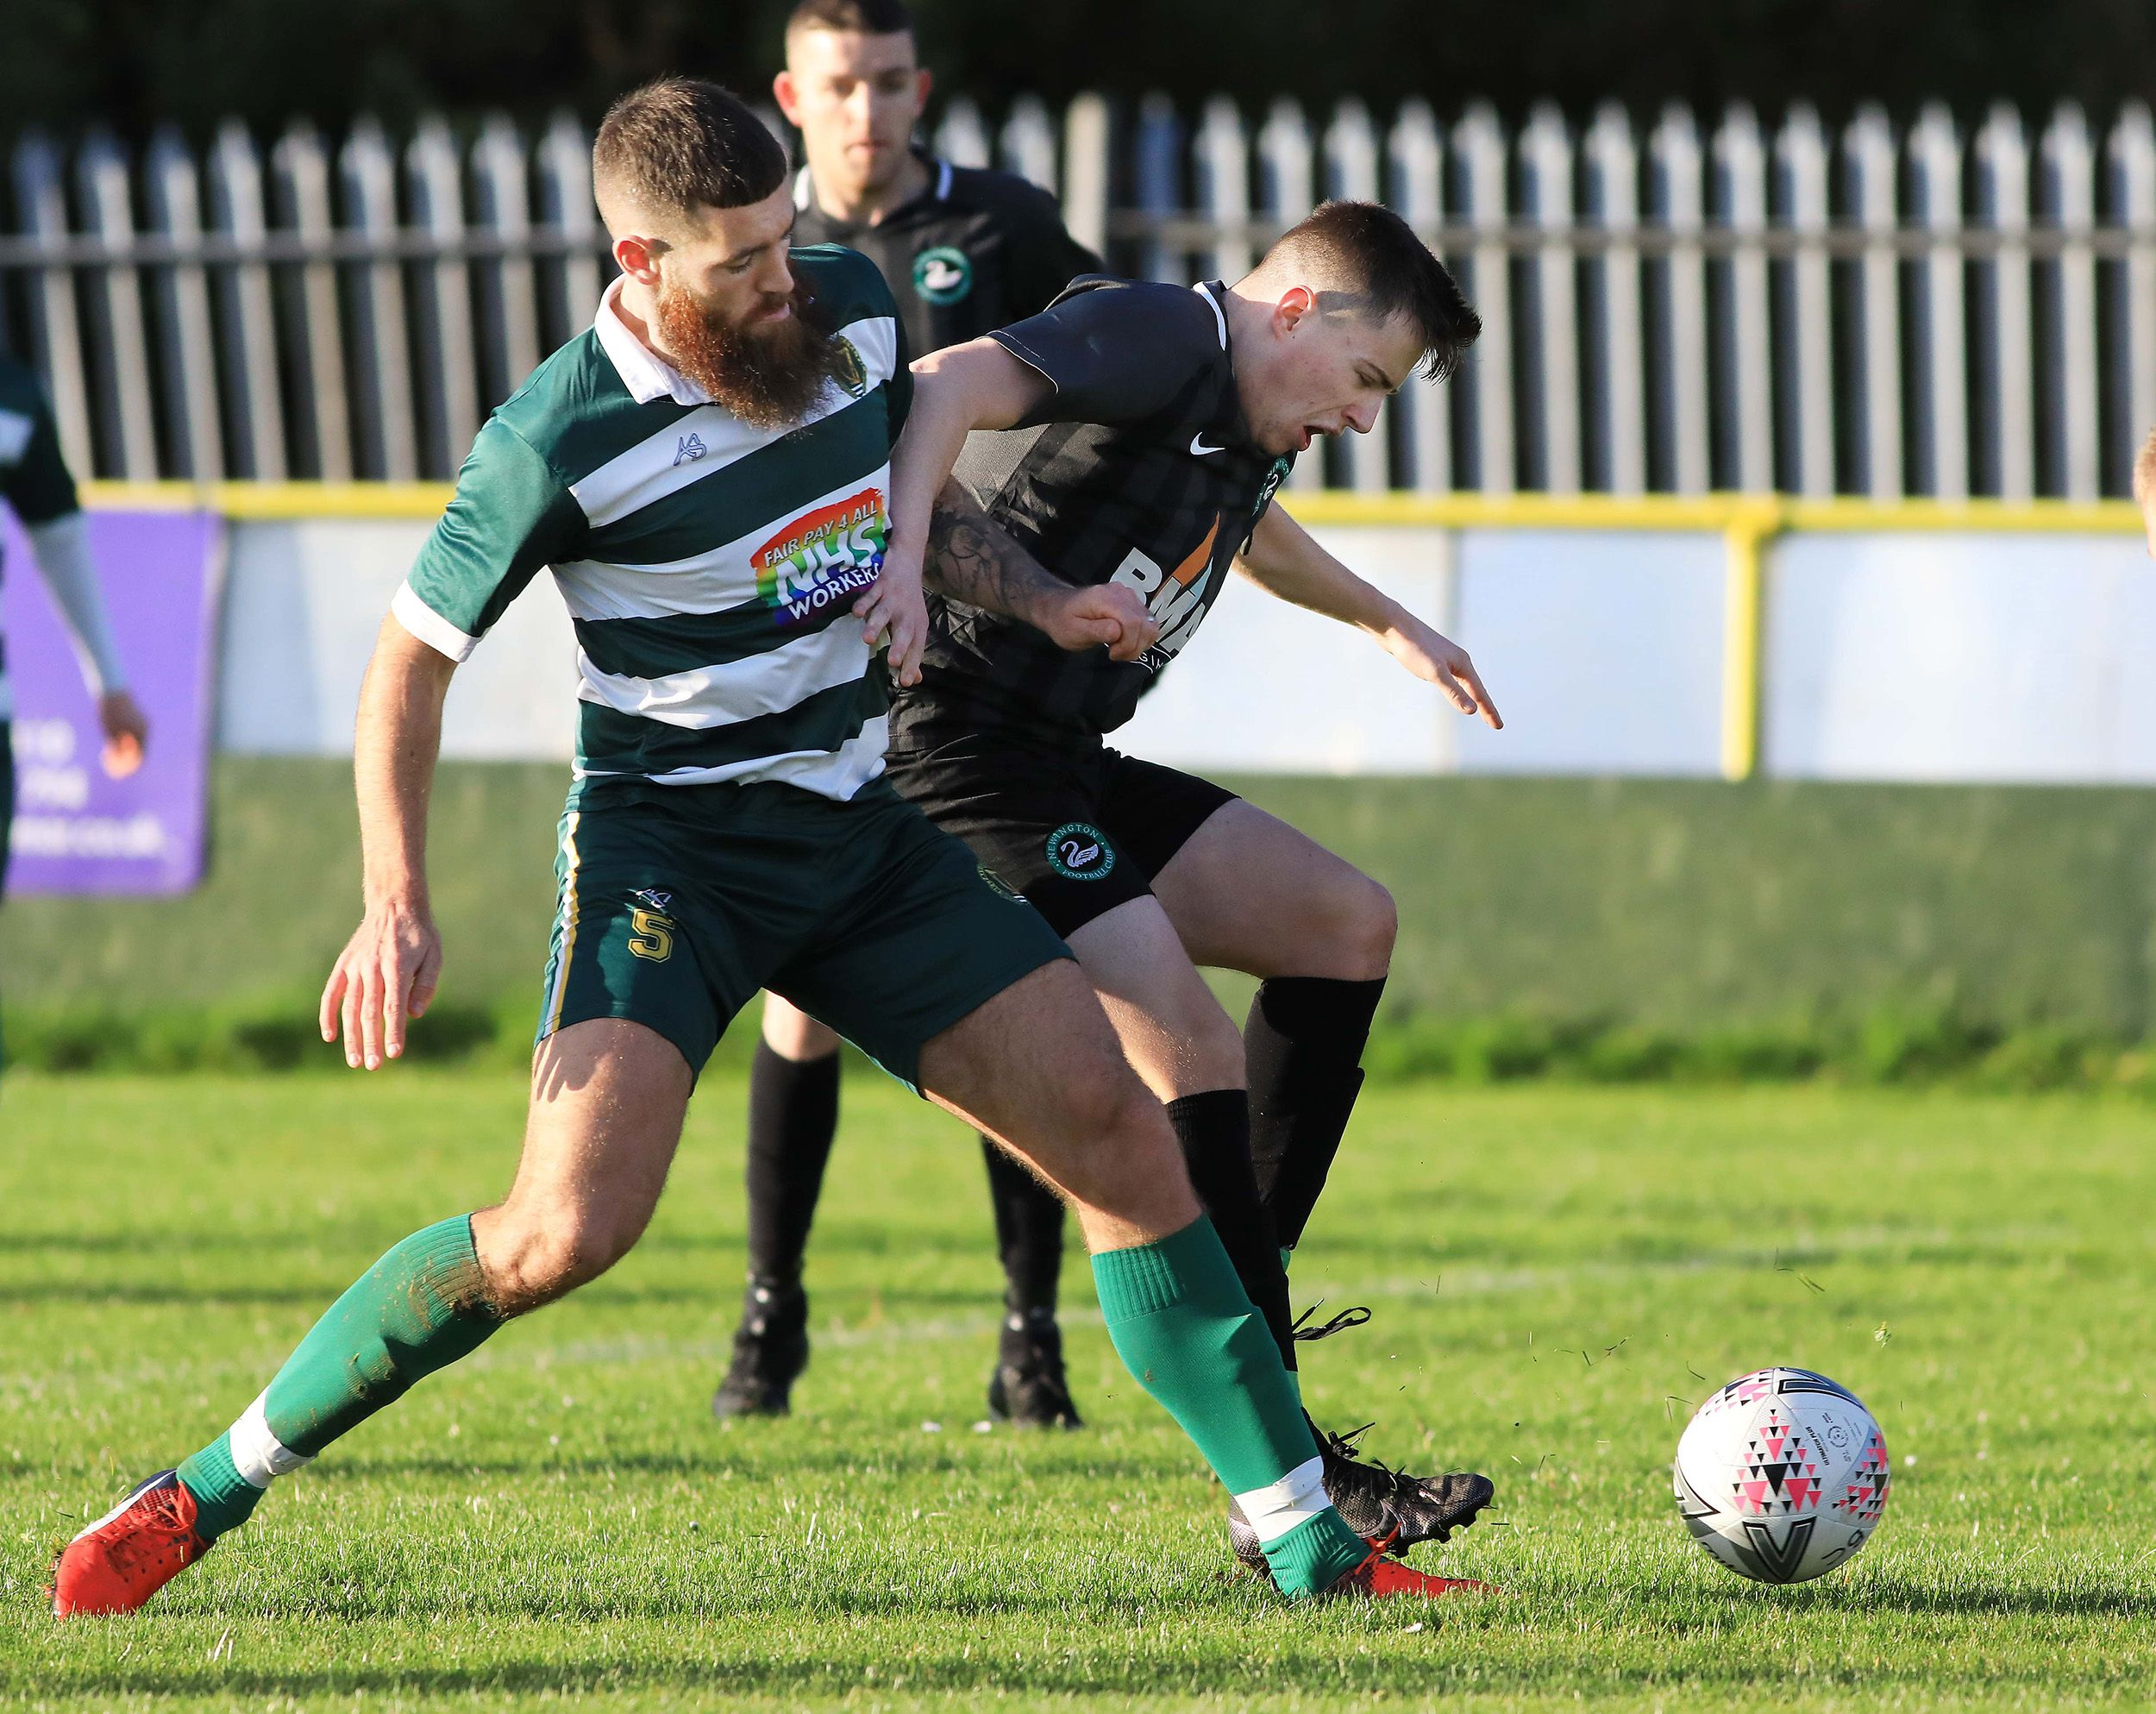 Belfast Celtic will be without captain Mark Clarke, pictured in action against Newington, for next Tuesday's Irish Cup clash against Carrick Rangers while Padraig McParland and Brendan Shannon are also set to miss out